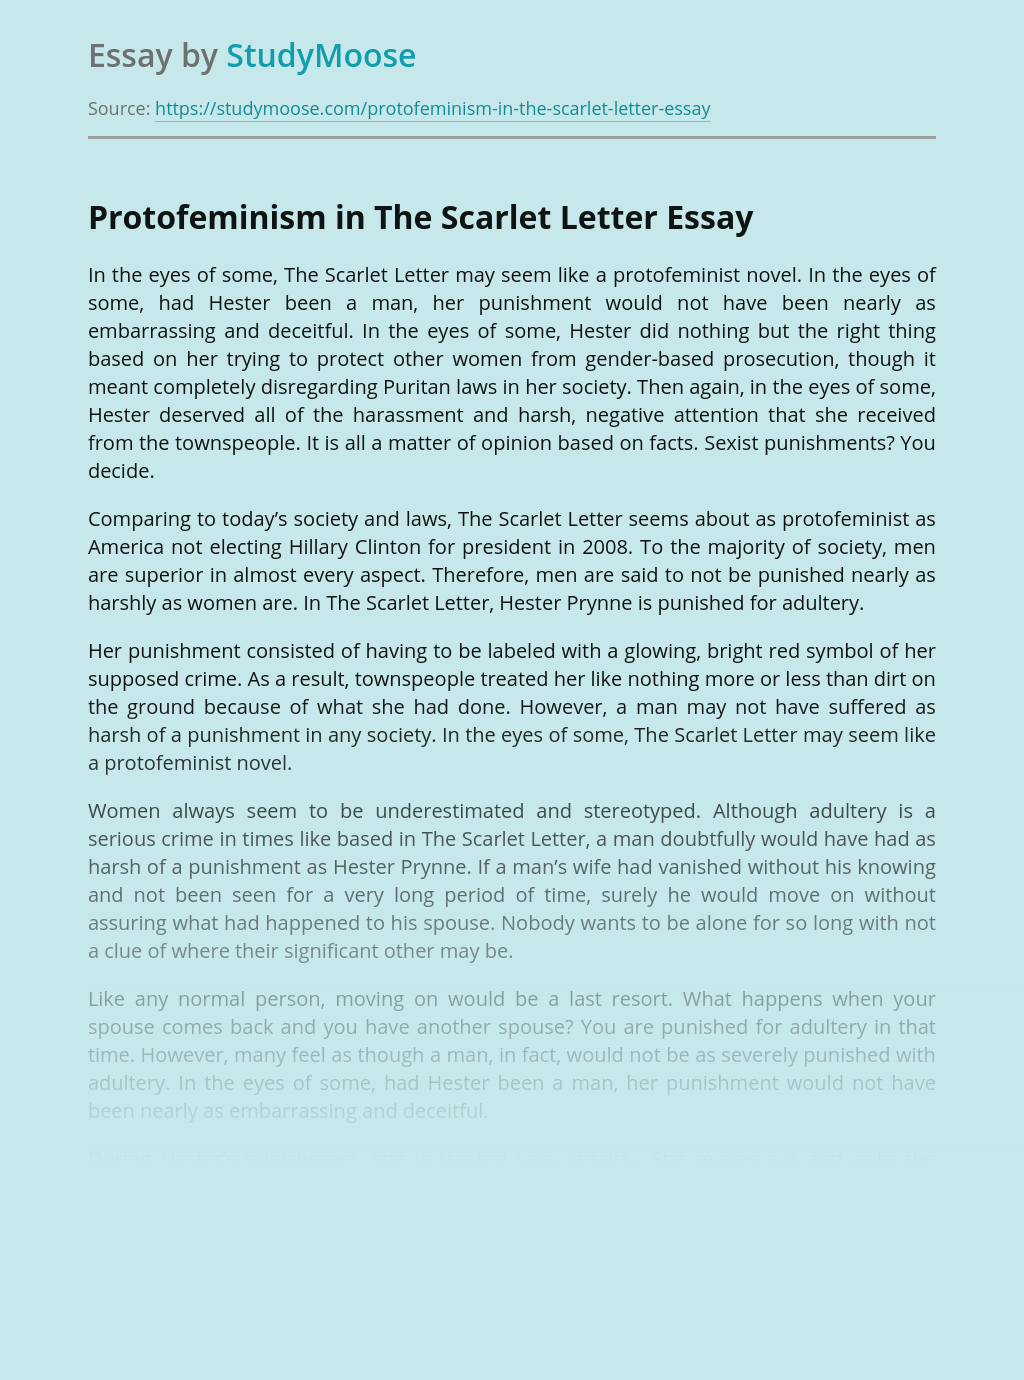 Protofeminism in The Scarlet Letter